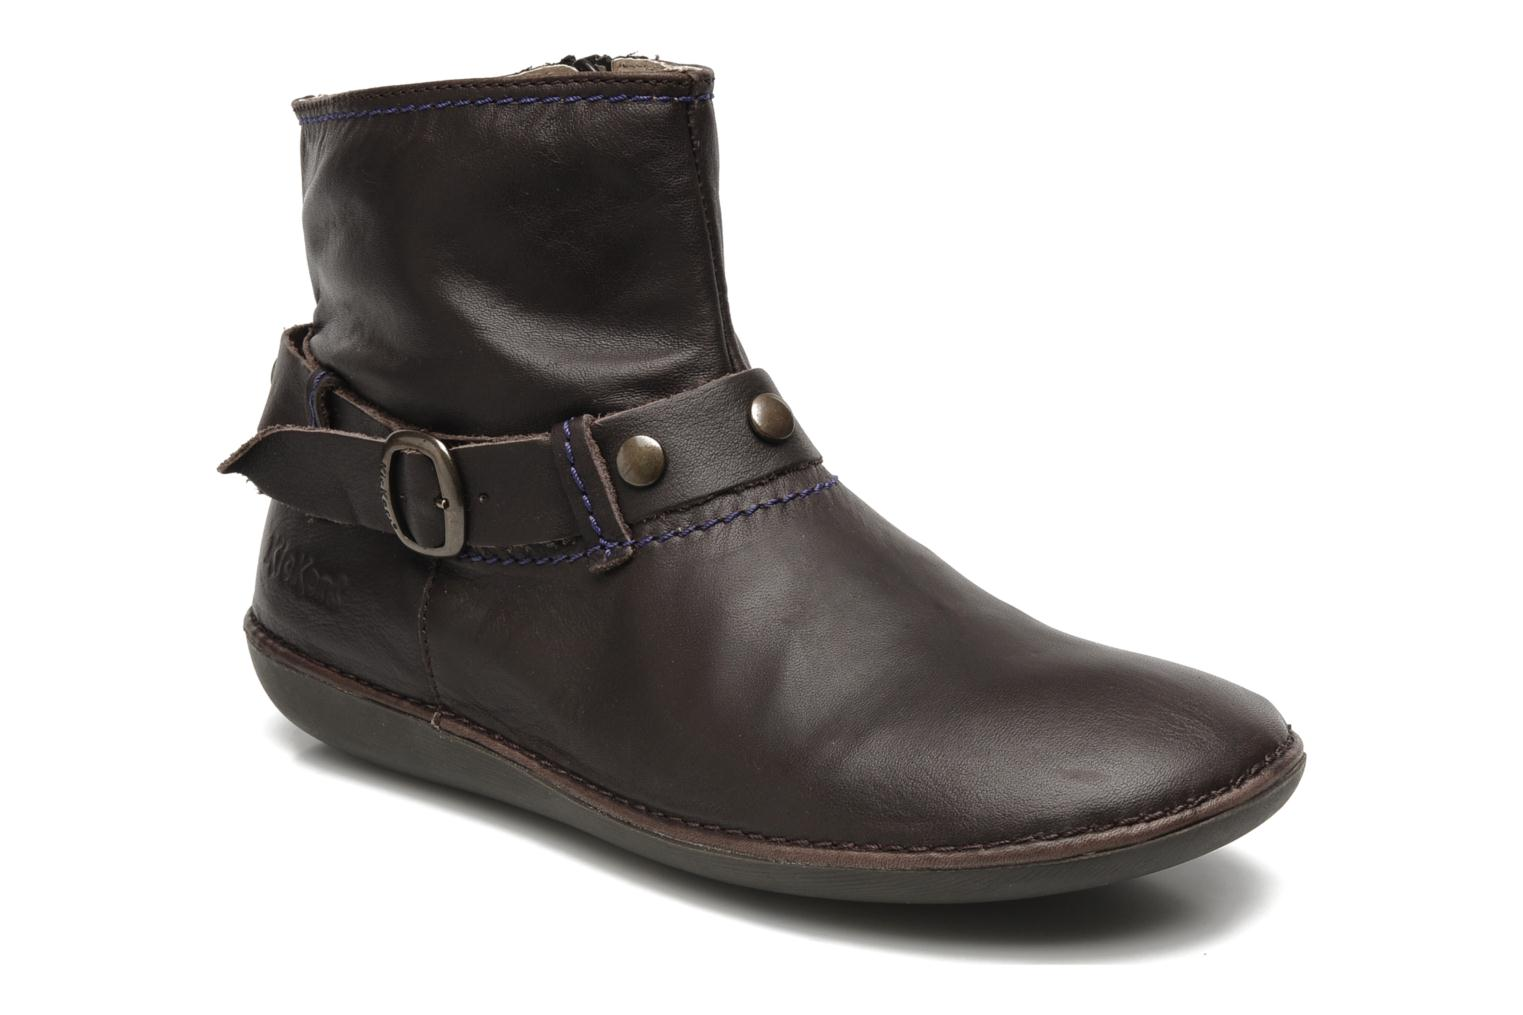 Sarenza Boots Bottines Chez 103352 Exploded marron Kickers Et zqO88T